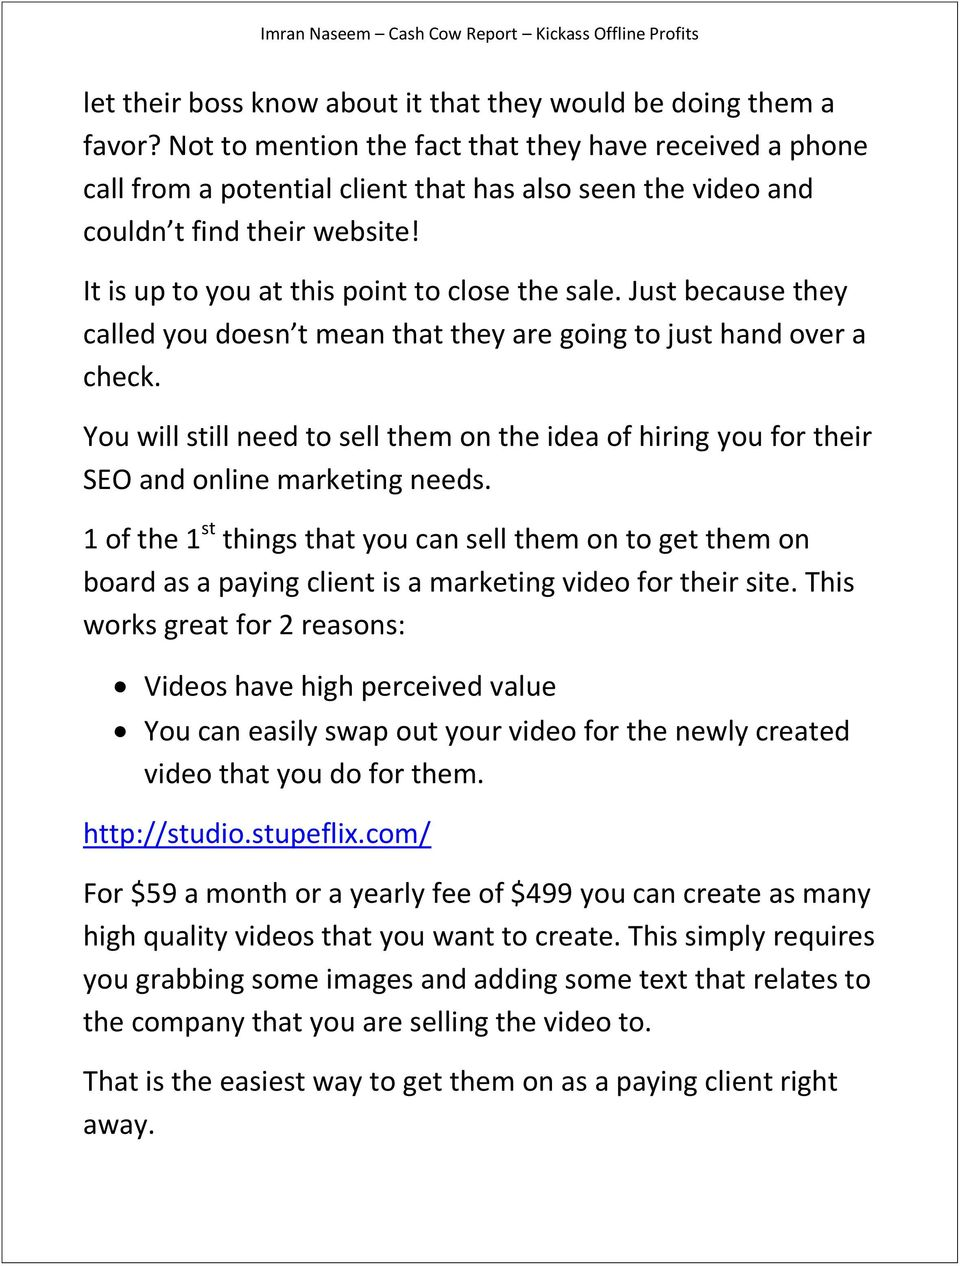 Just because they called you doesn t mean that they are going to just hand over a check. You will still need to sell them on the idea of hiring you for their SEO and online marketing needs.